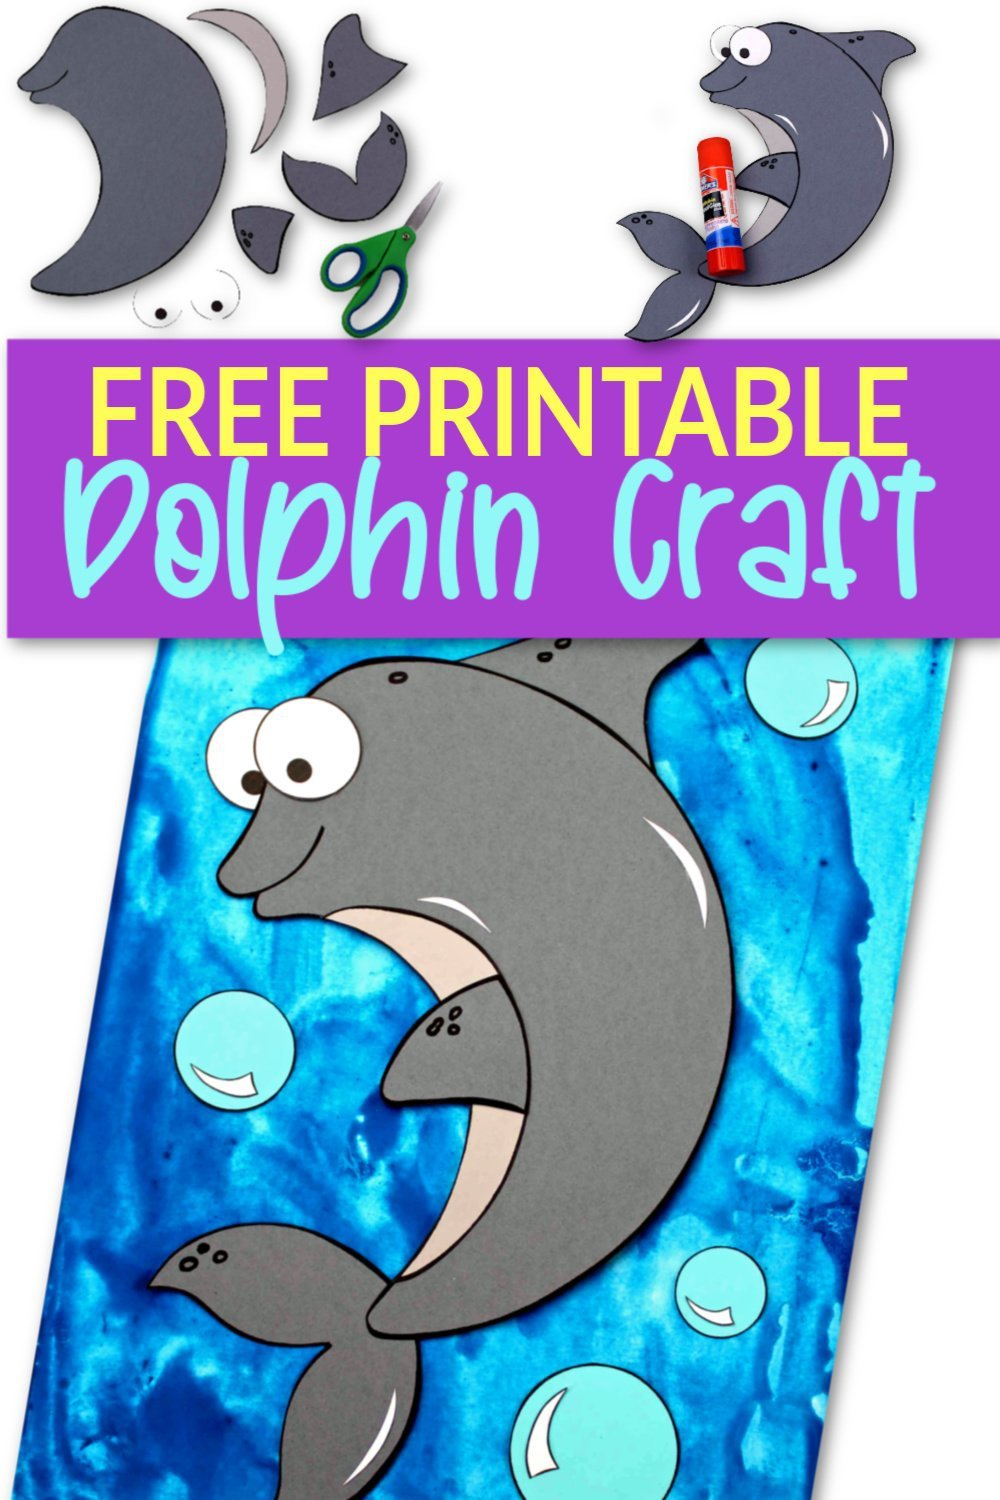 Free Printable Ocean Animal Dolphin Crafts for kids of all ages, including preschoolers and toddlers